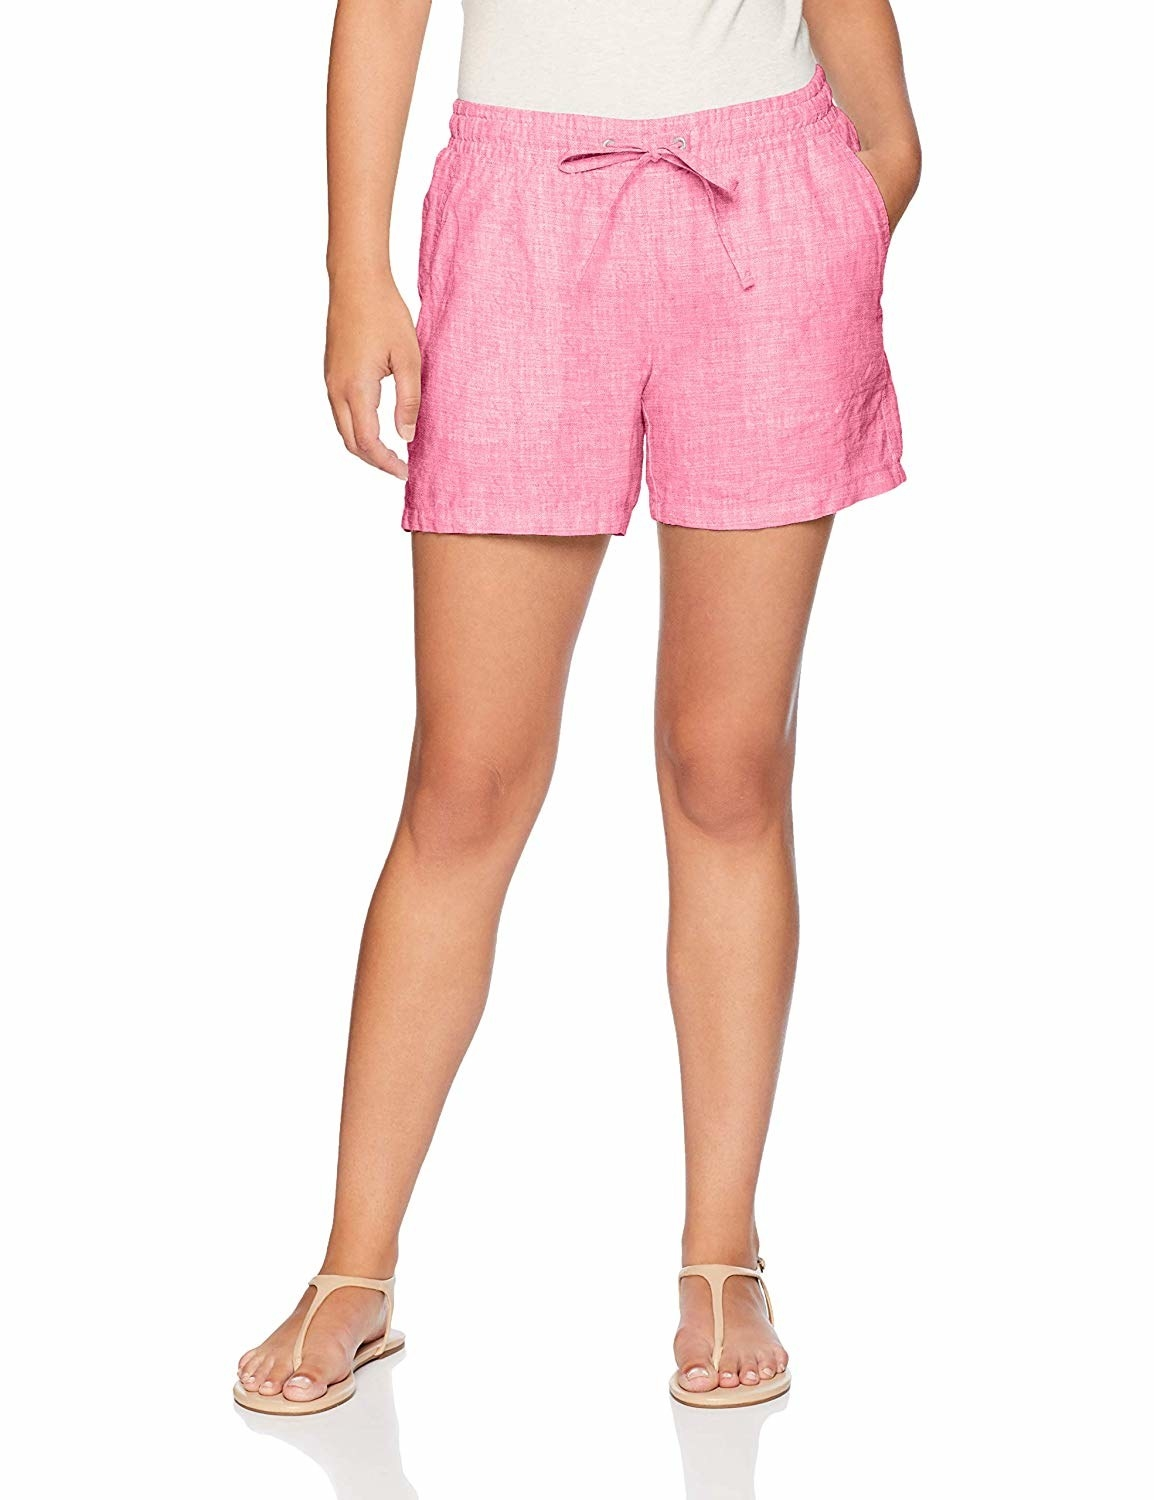 Model wearing the shorts in pink